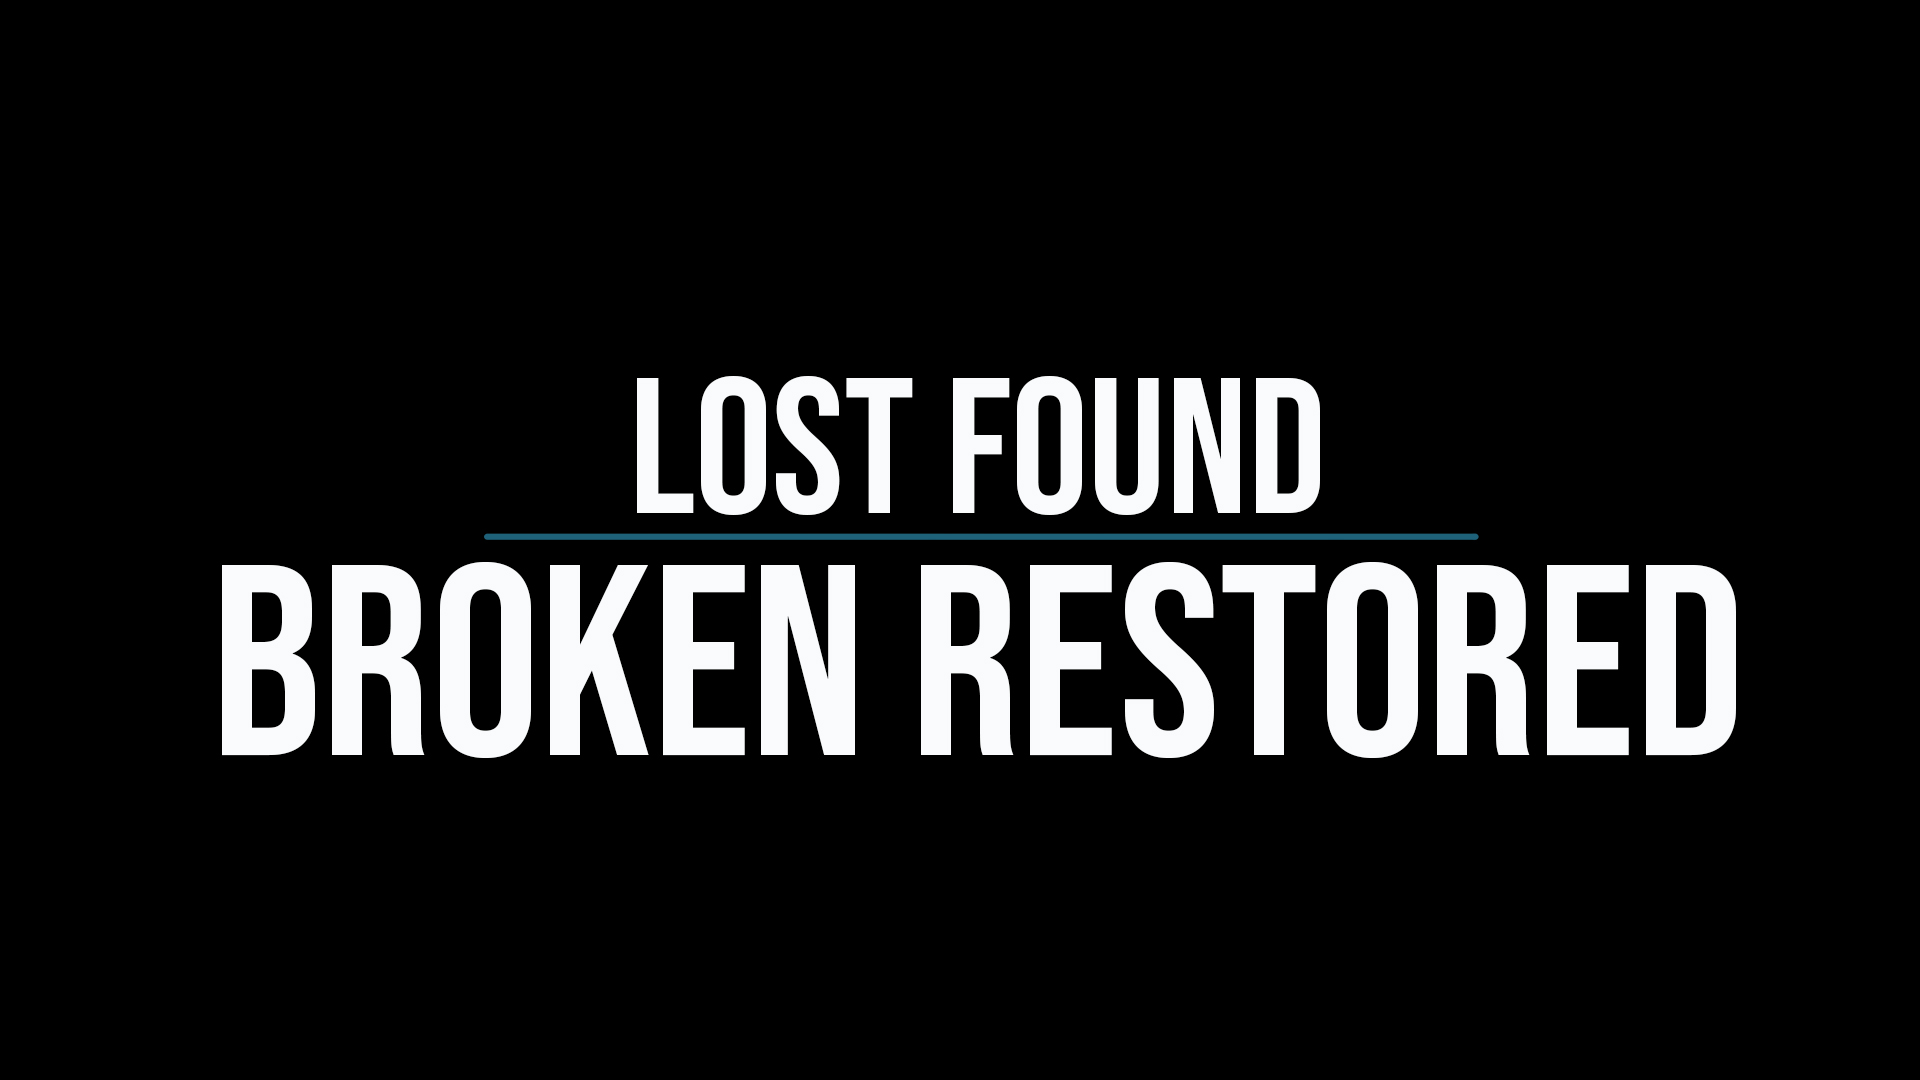 LOST FOUND BROKEN RESTORED v2.jpg